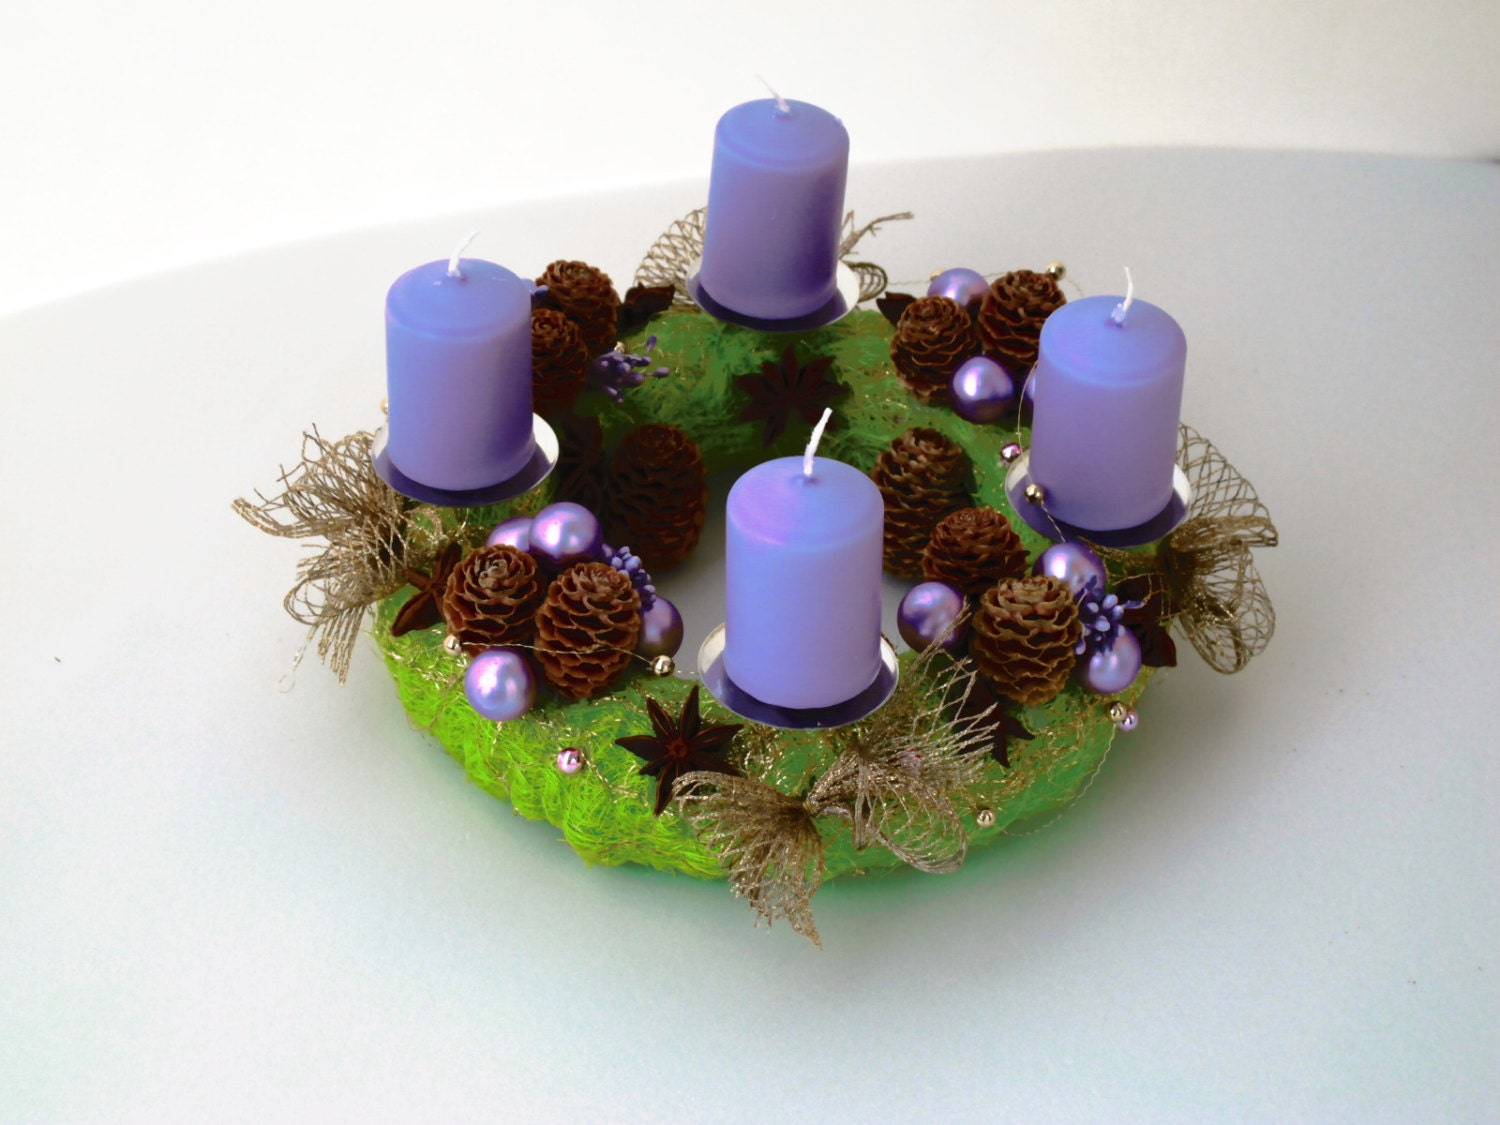 Advent wreath with candles- Home decor - Centerpiece - Holiday - Christmas - Green Gold and Lavender